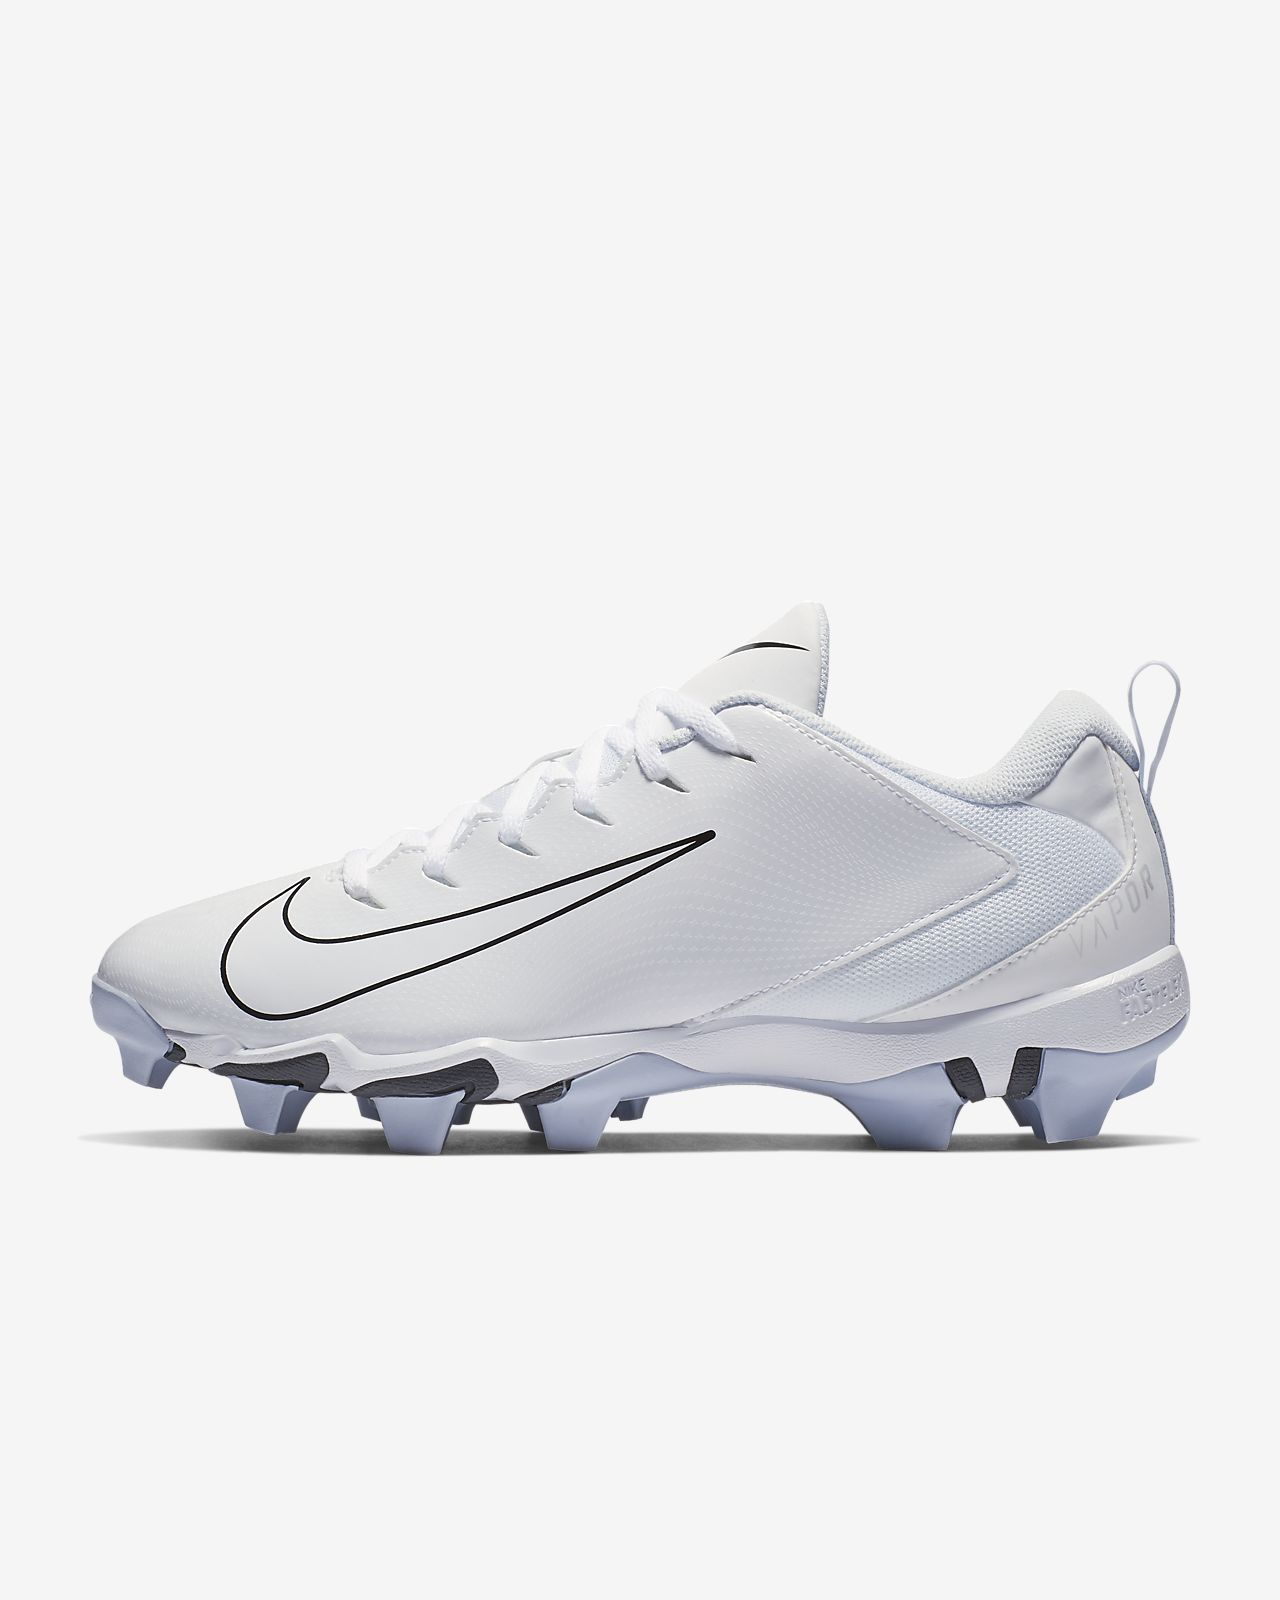 a9699377d Nike Vapor Untouchable Shark 3 Men s Football Cleat. Nike.com